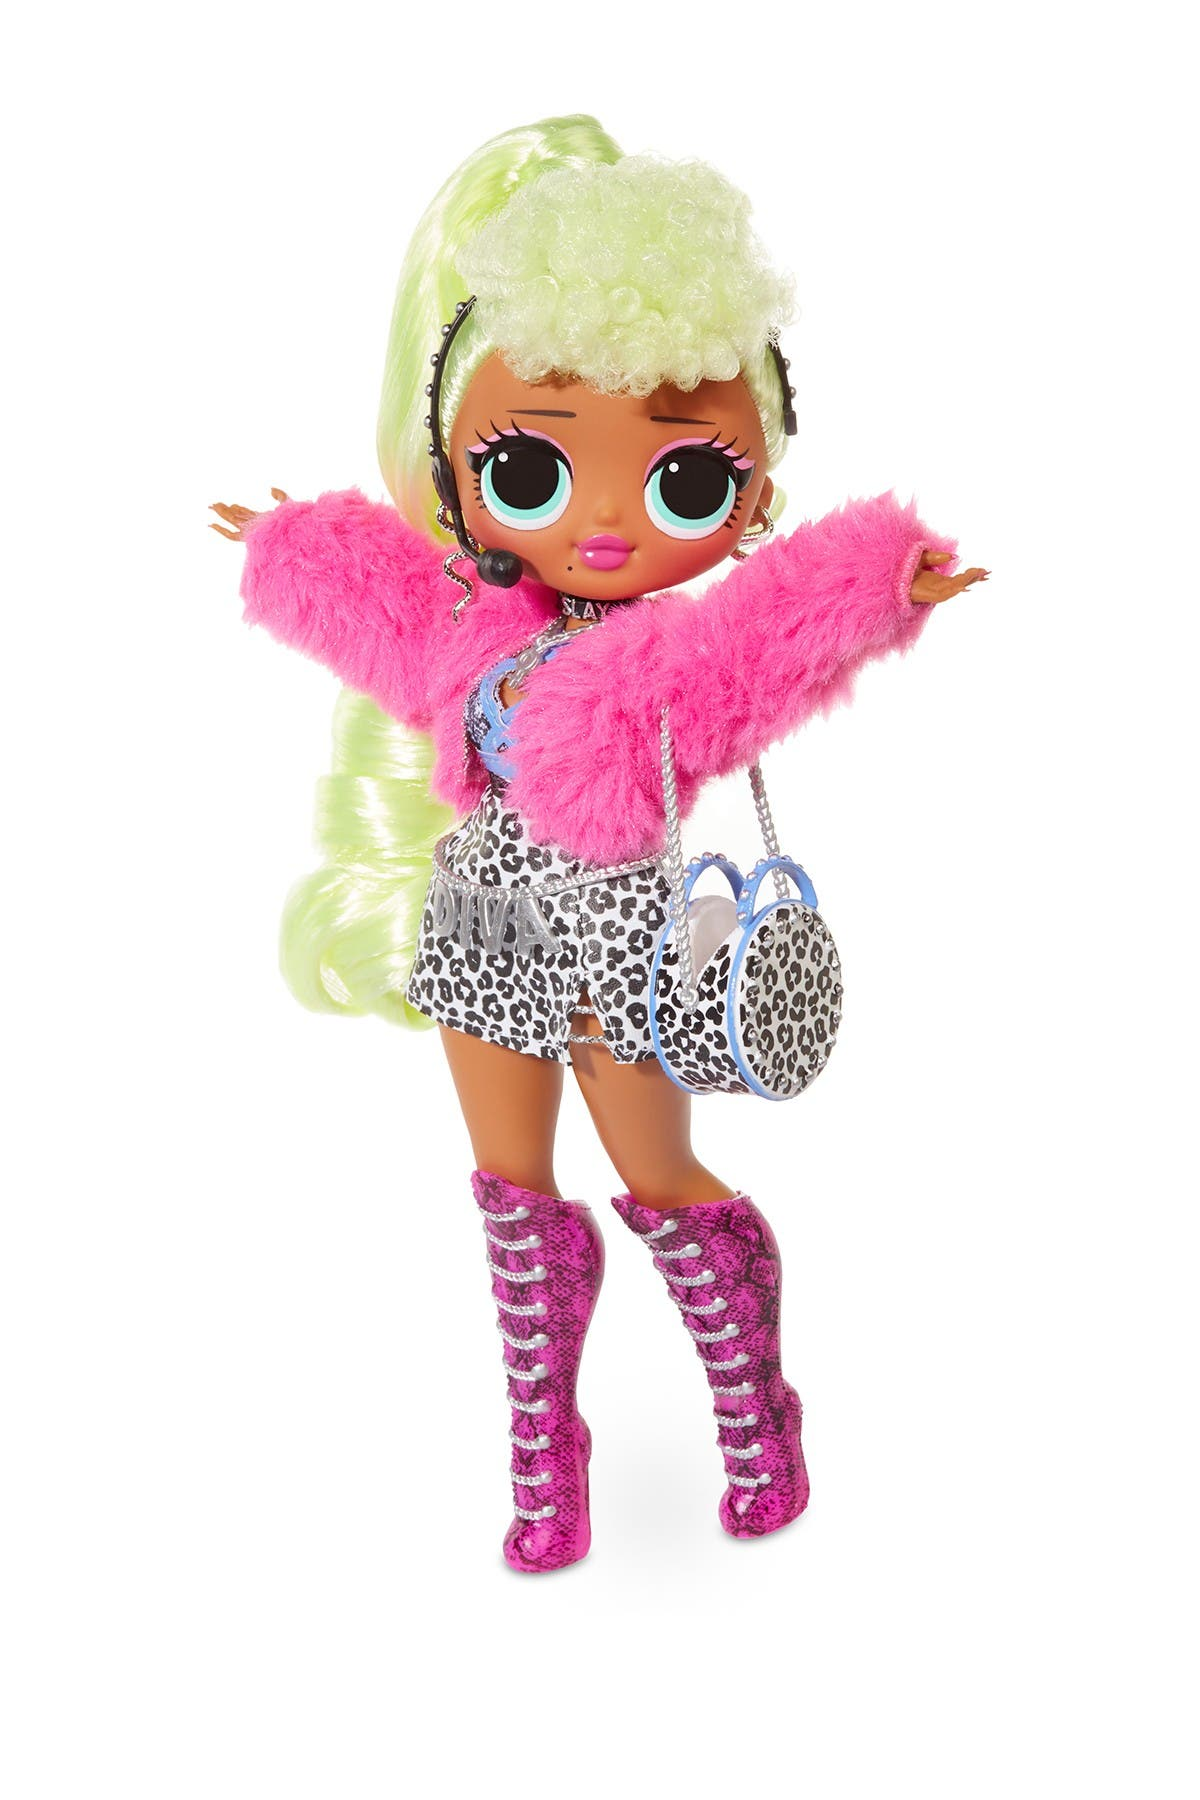 LOL Surprise doll accessories silver boots